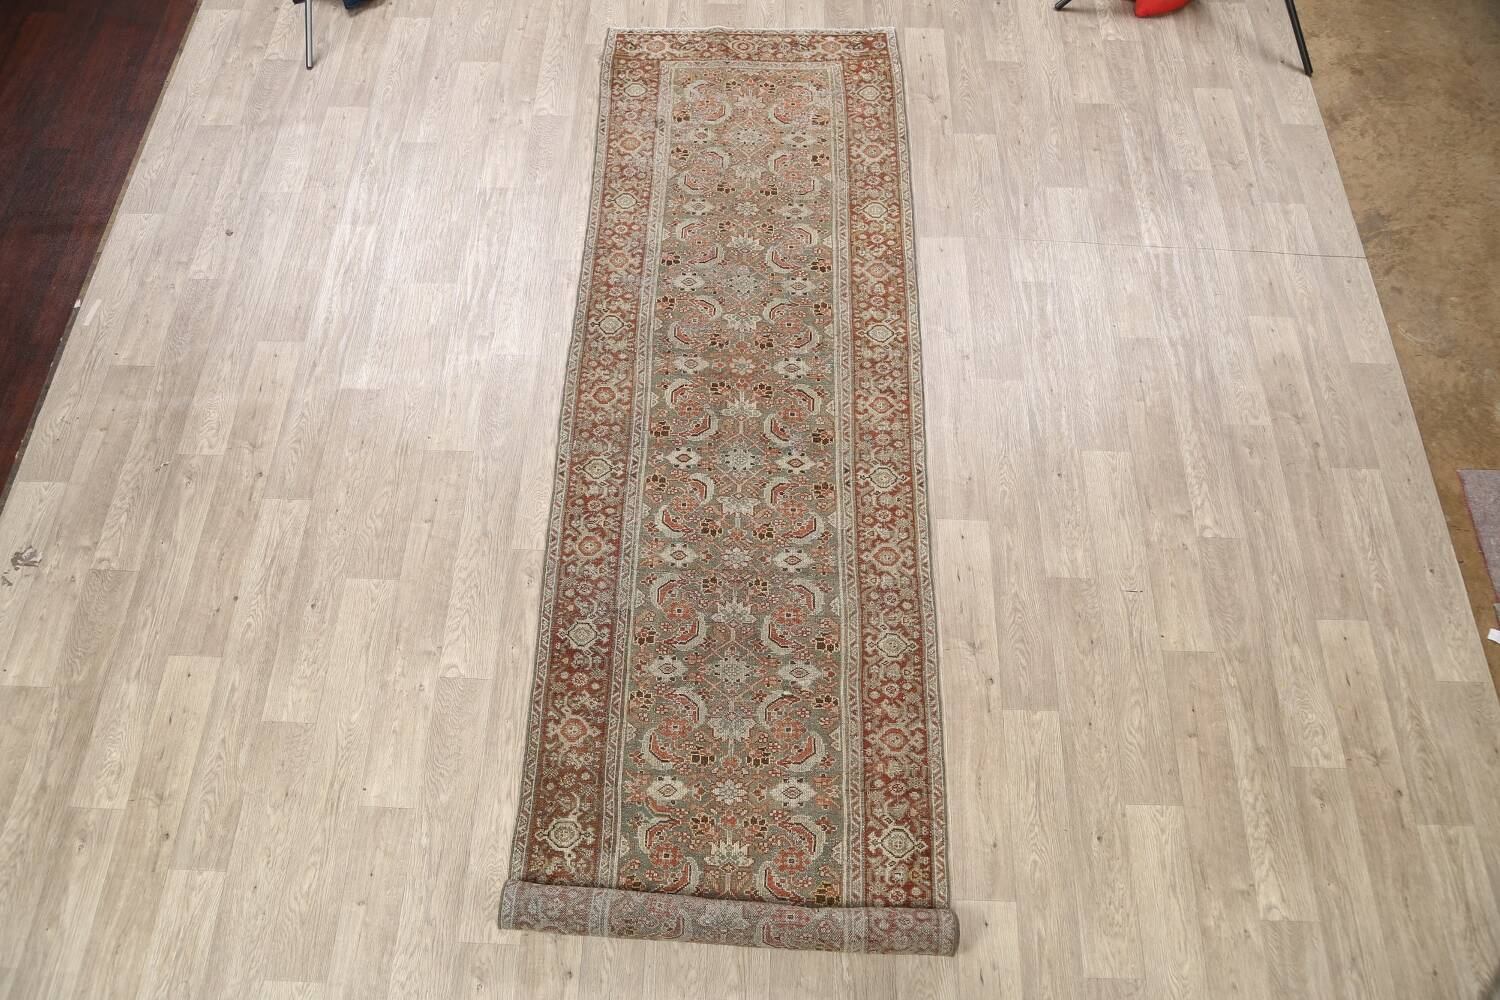 Pre-1900 Antique Malayer Persian Runner Rug 2x16 image 2